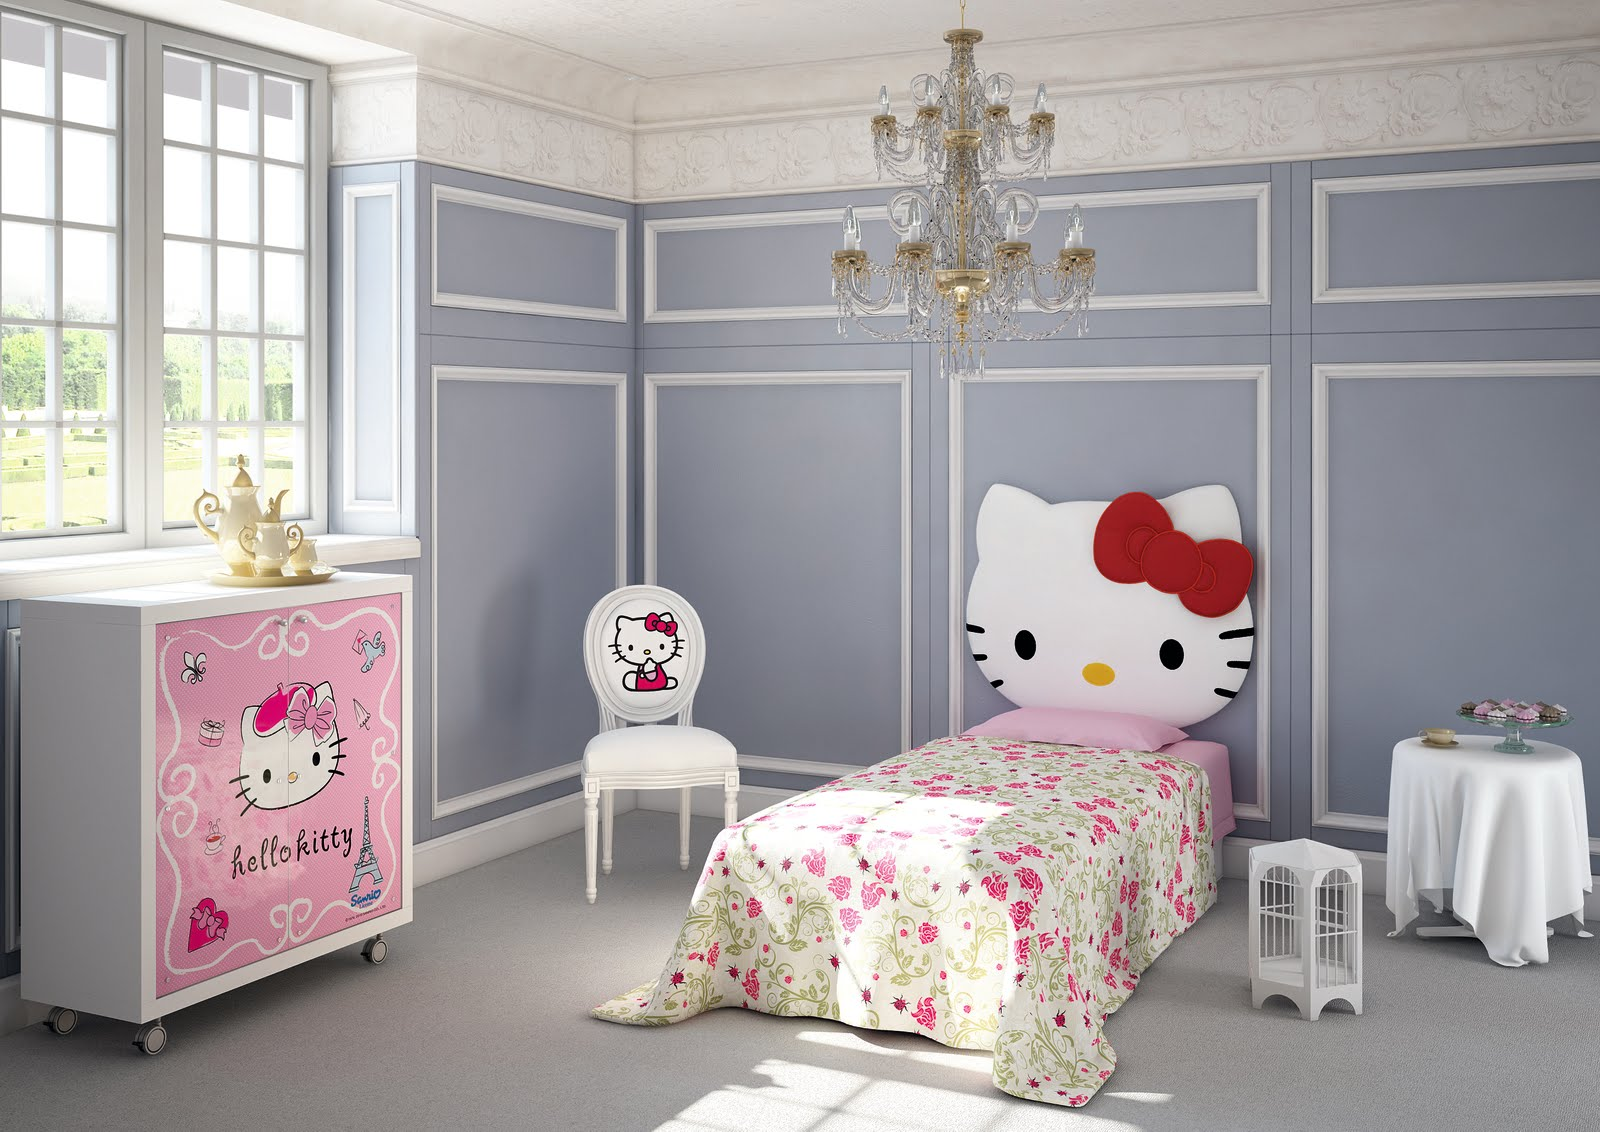 Splendid Hello Kitty Decor For Bedroom